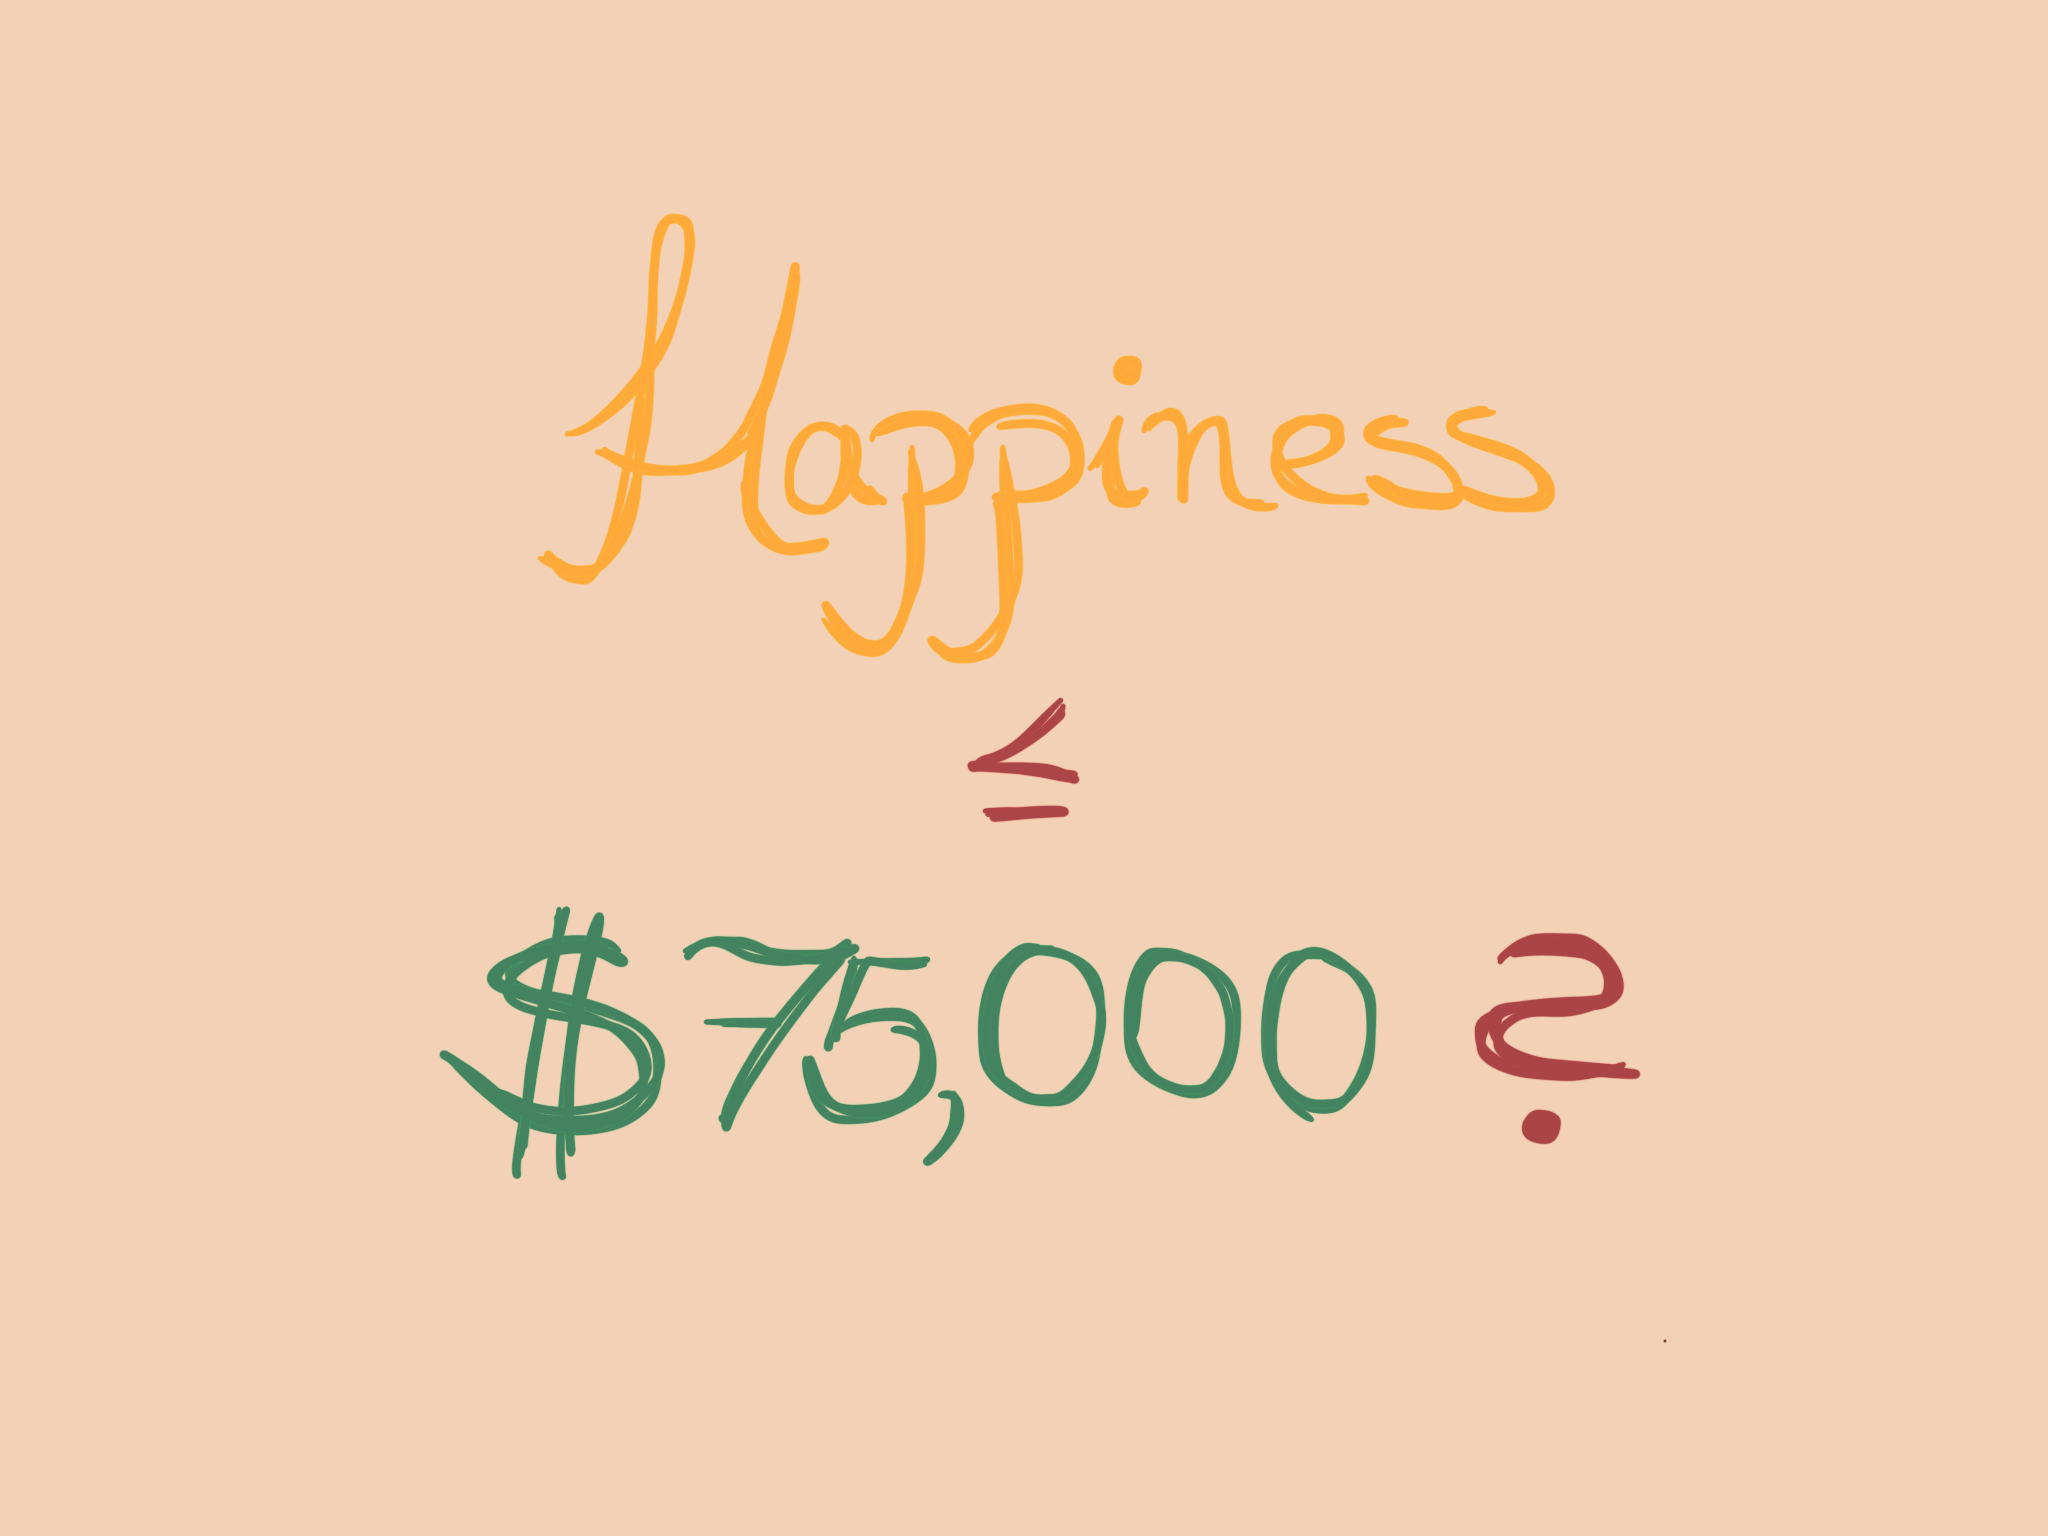 A Year Of Happiness is there no more happiness after $75,000? - siavush